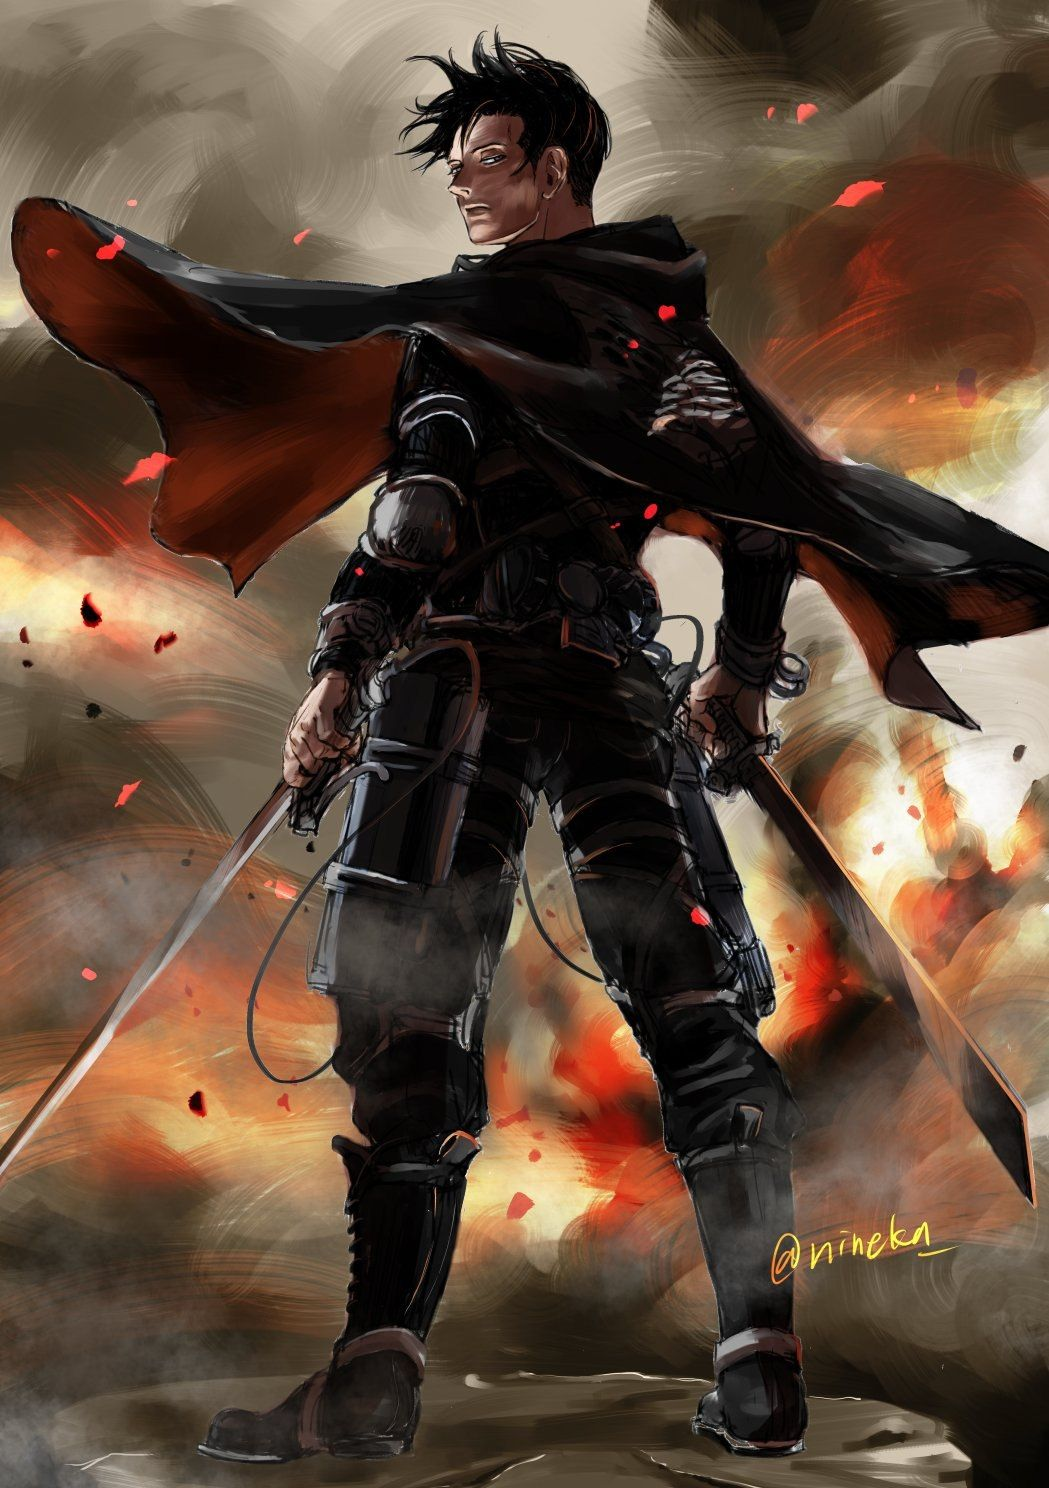 Pin by Doel Nath on attack on titan   Attack on titan levi ...